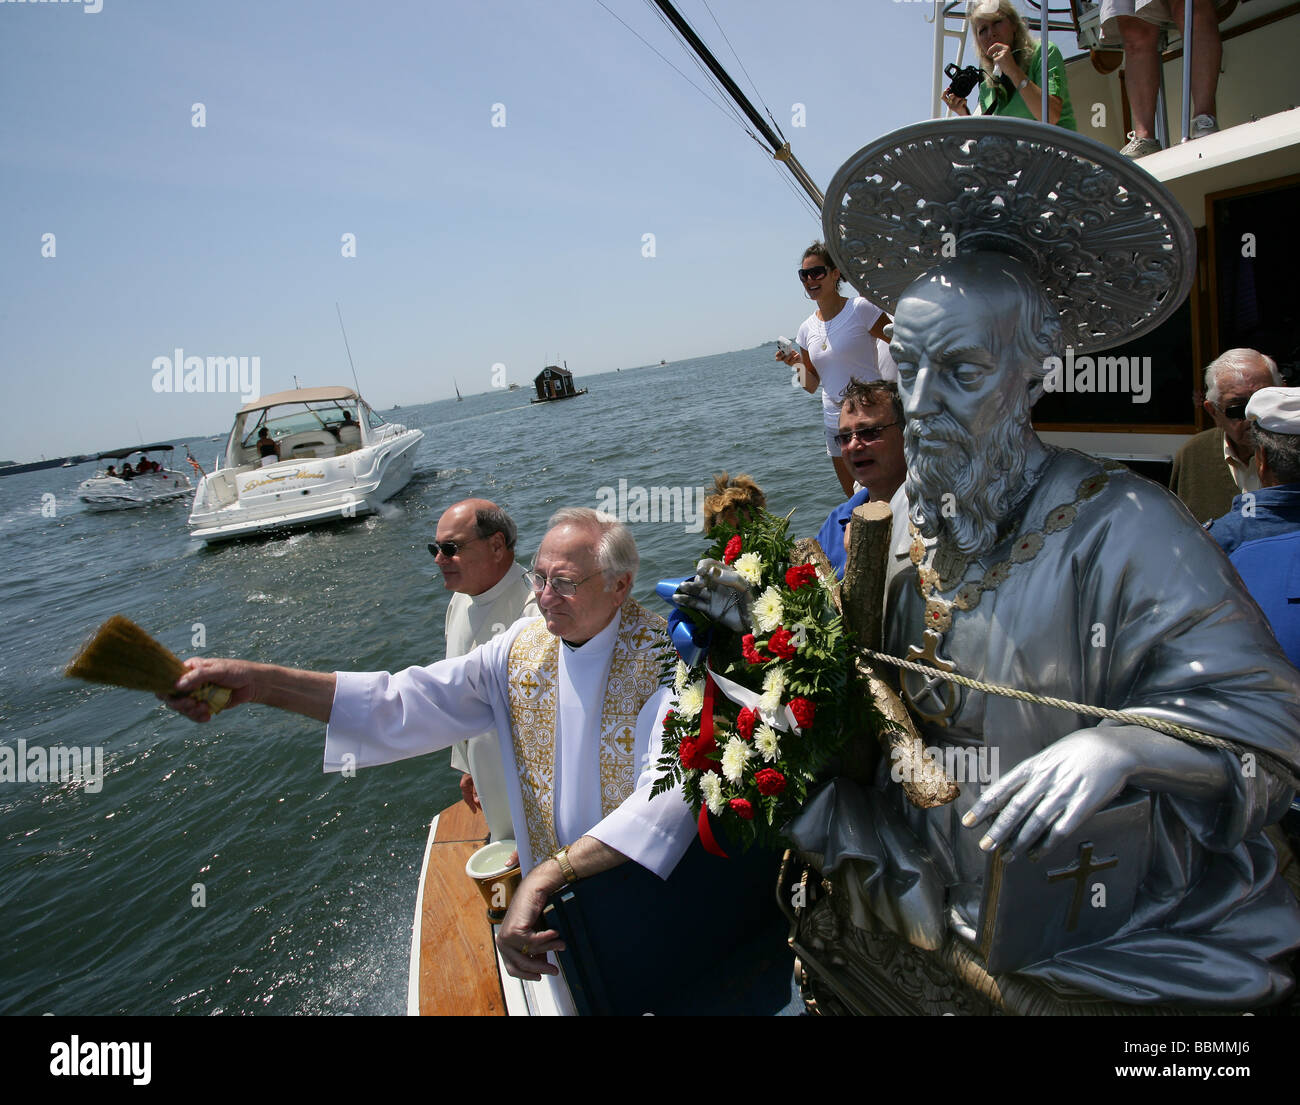 A Priest blesses boats during the annual St. Andrew the Apostle Society blessing of the fleet in New Haven Connecticut - Stock Image